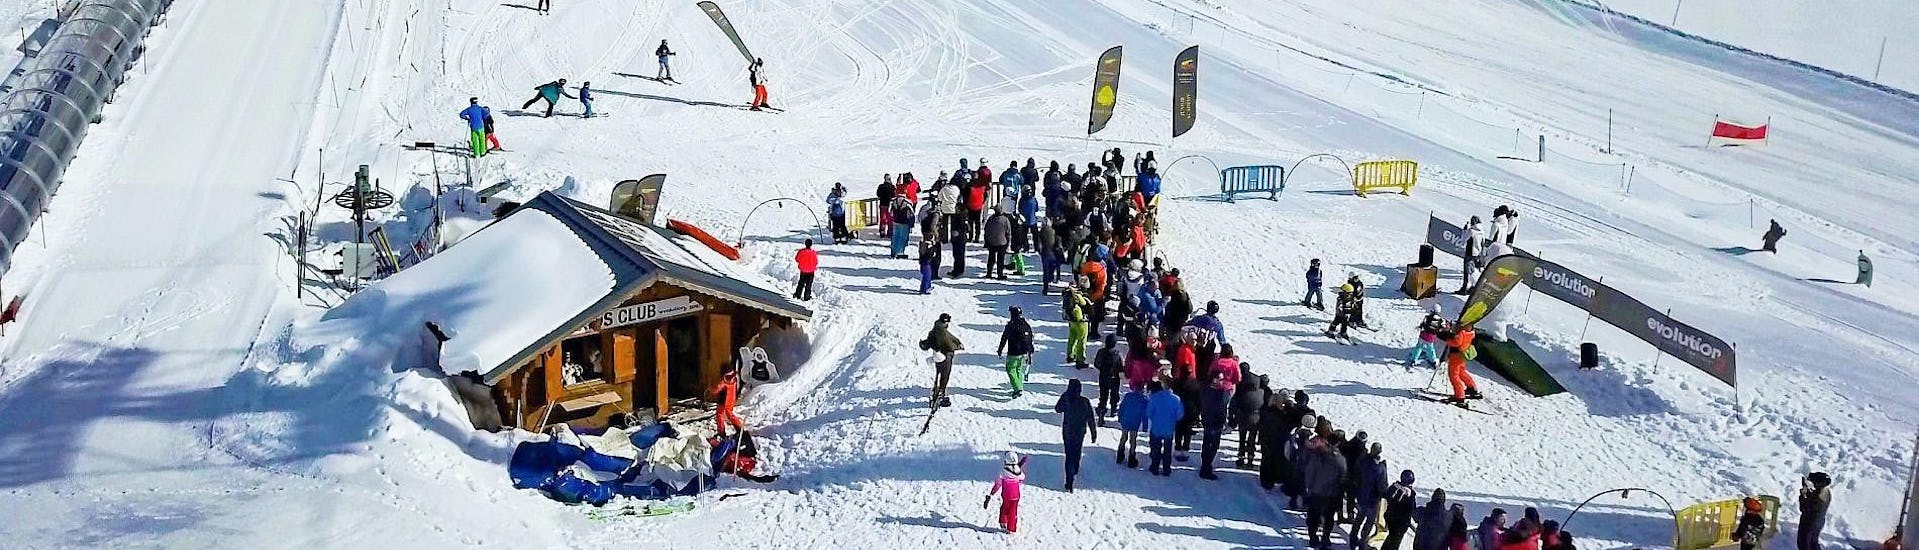 """Young skiers are learning how to ski in the safe environment of the Kids Club of the ski school Evolution 2 Tignes during their Kids Ski Lessons """"Kids Club"""" (3-5 years) - Morning."""